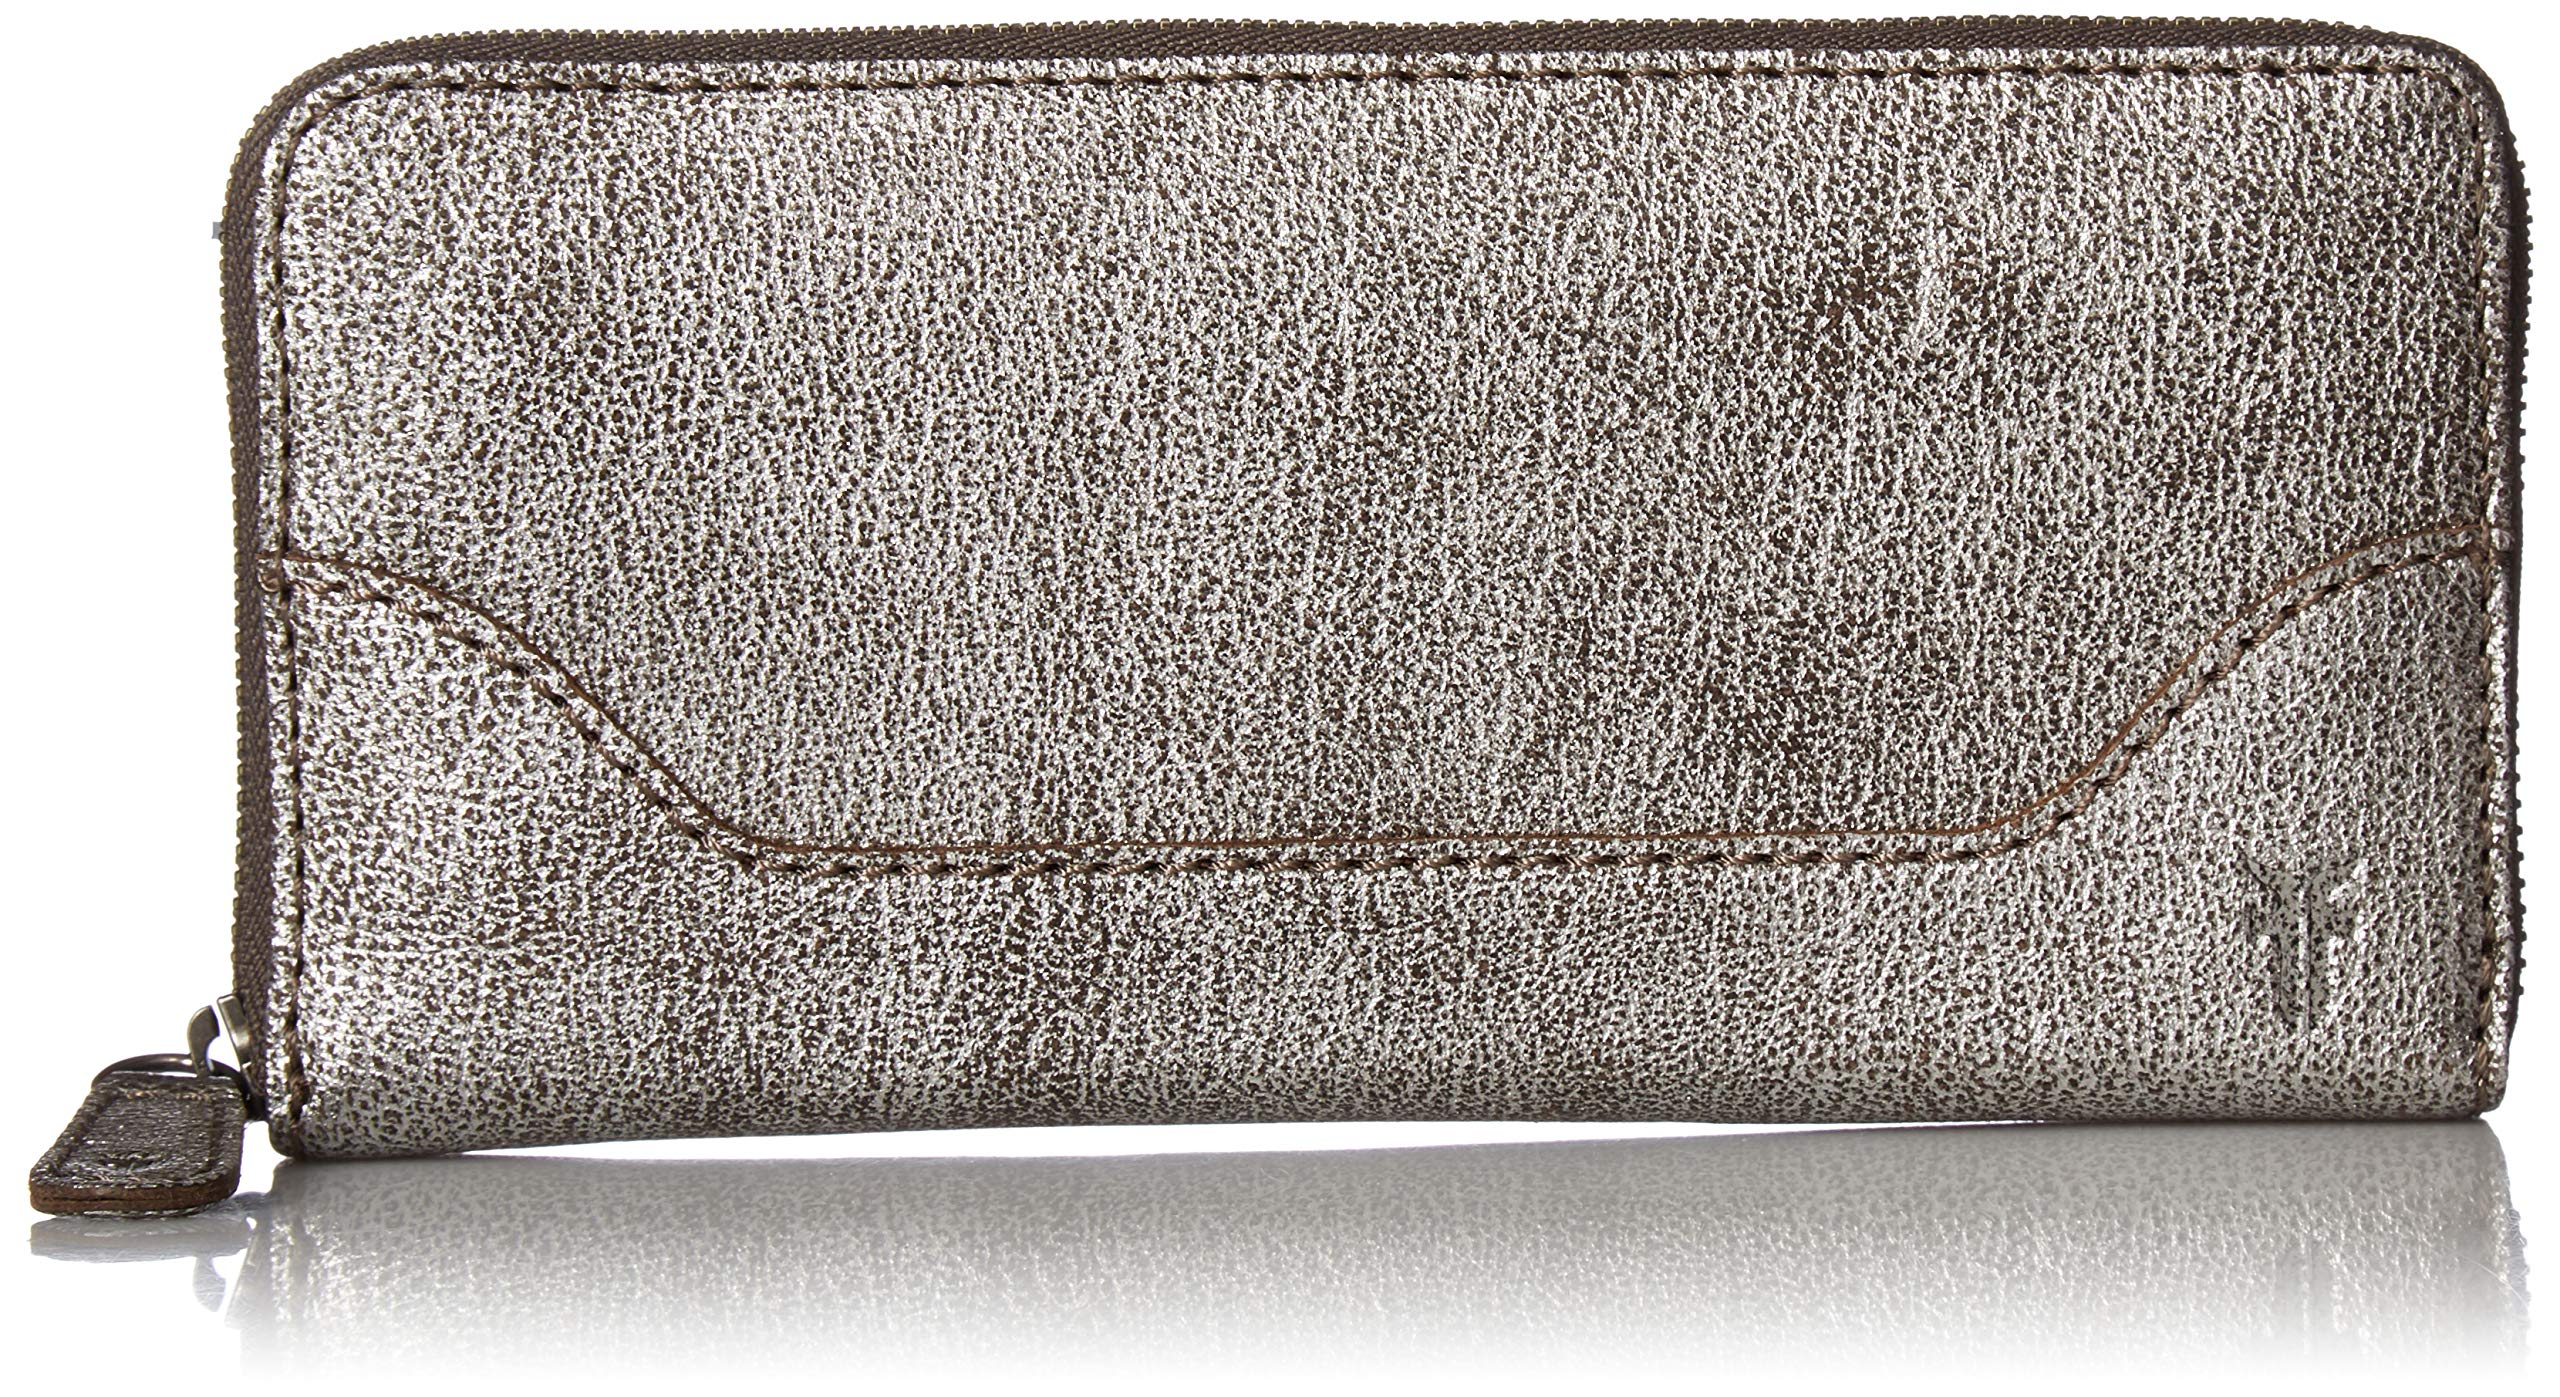 FRYE Melissa Zip Around Leather Wallet, silver